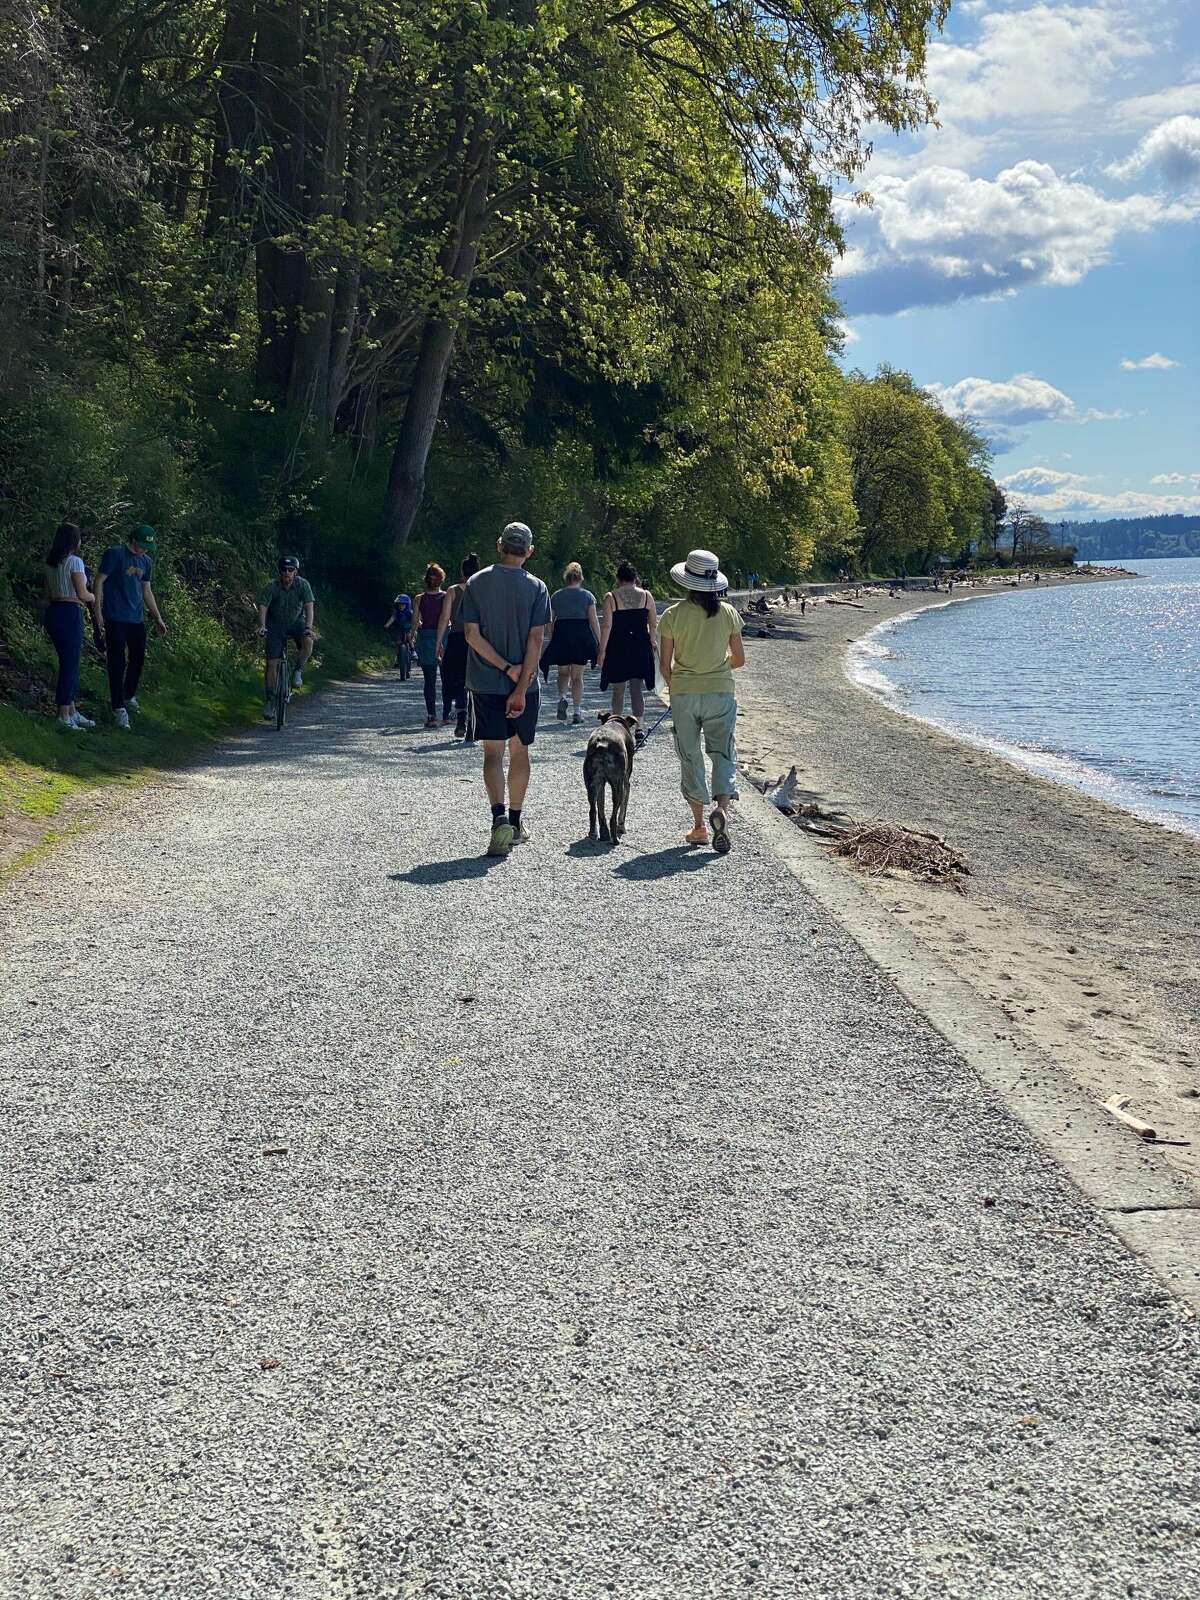 People walking on a sunny day at Lincoln Park in West Seattle, Wash. on April 19, 2020.